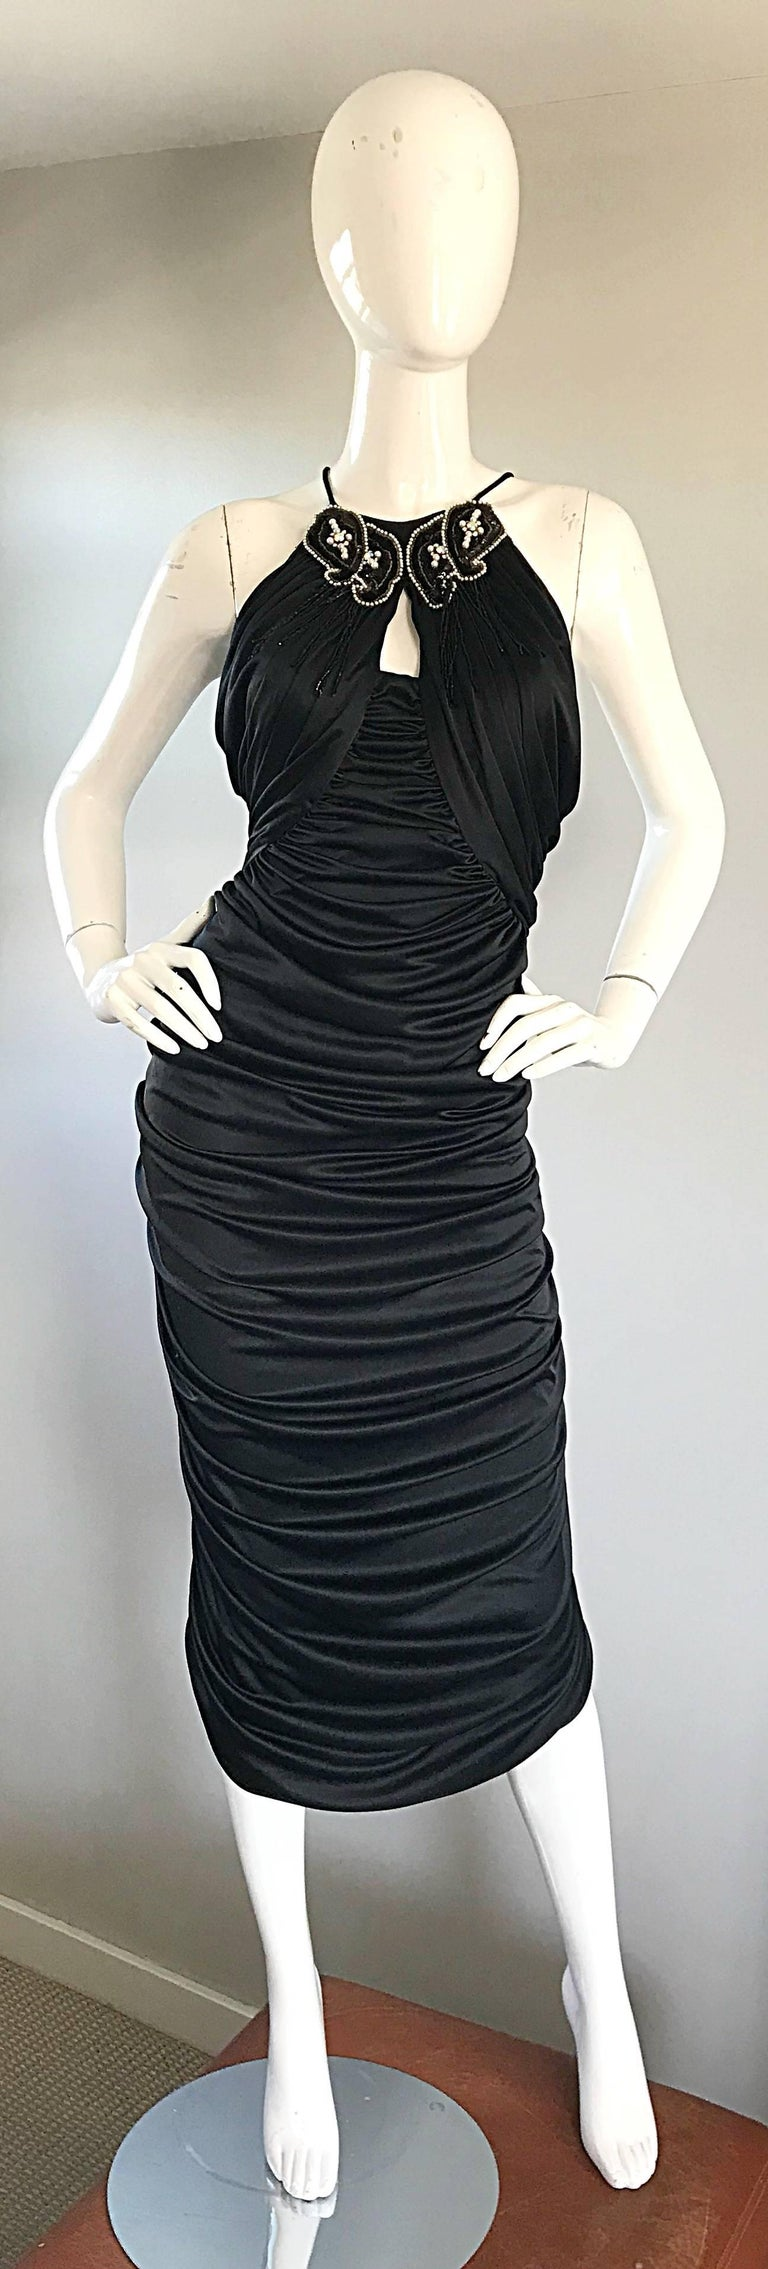 1970s Vintage Samir Black Beaded + Pearl + Rhinestone Sexy Ruched 70s Dress In Excellent Condition In Chicago, IL